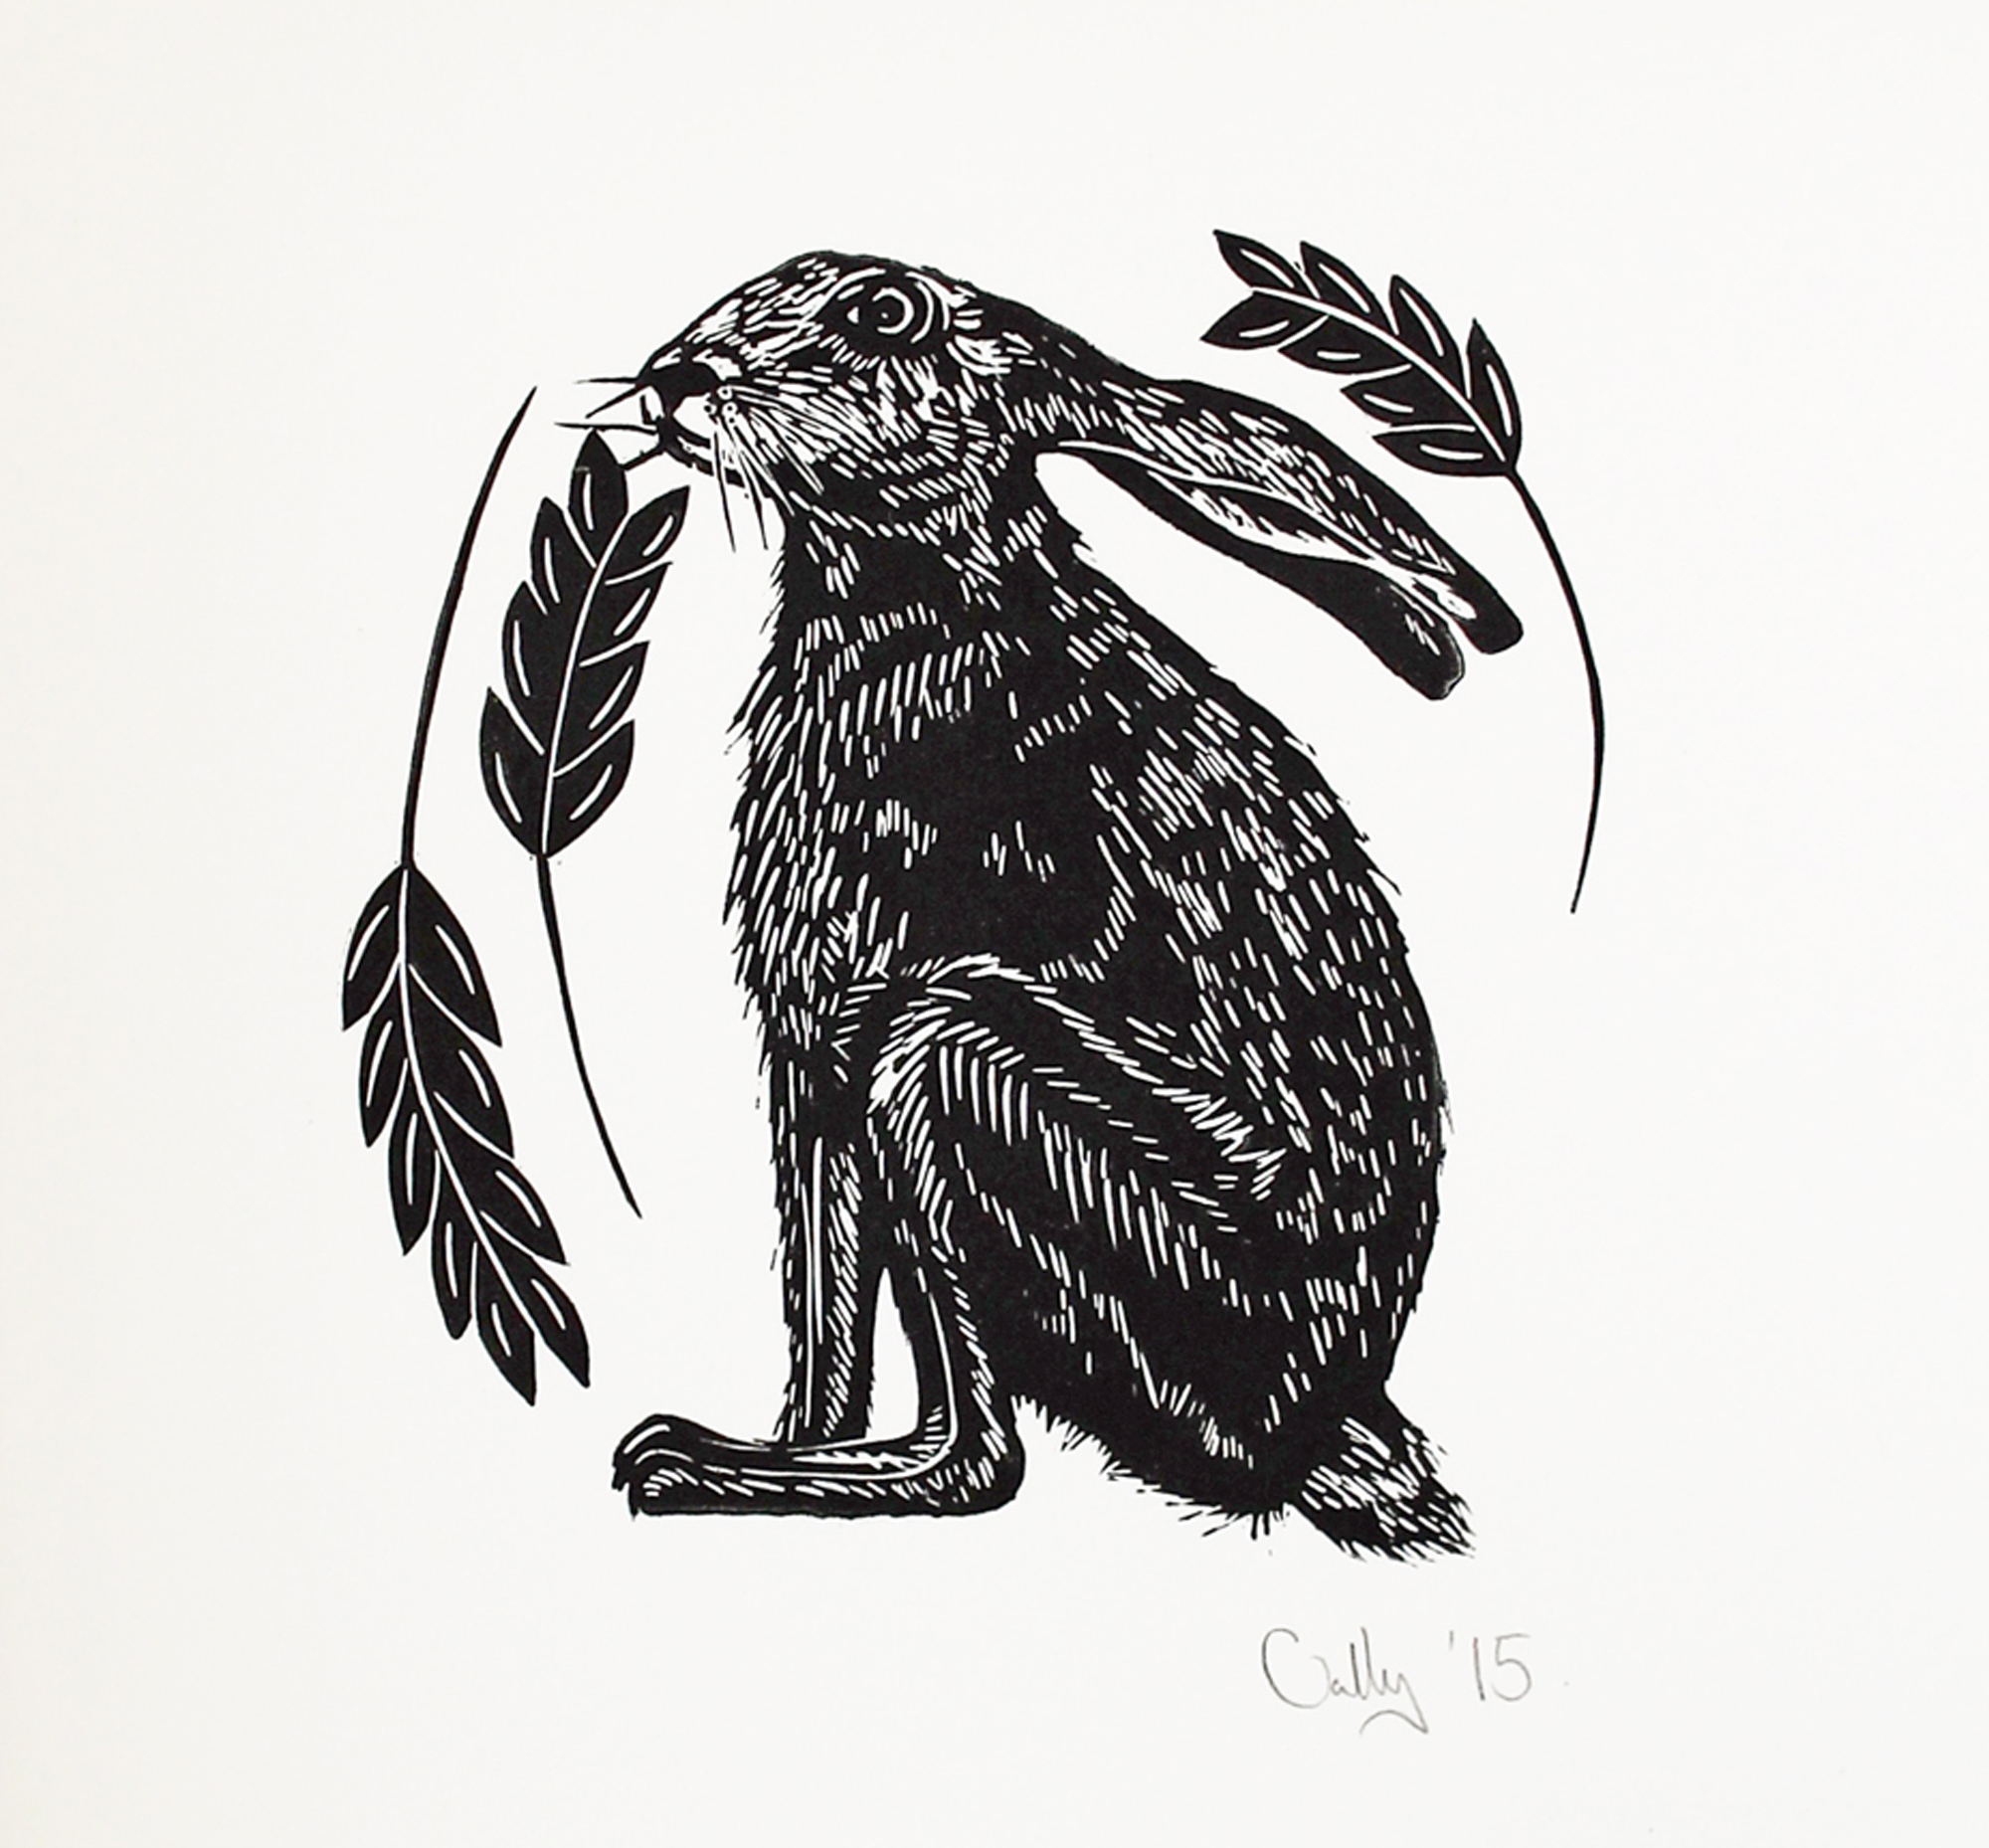 Hare Print By Cally Conway